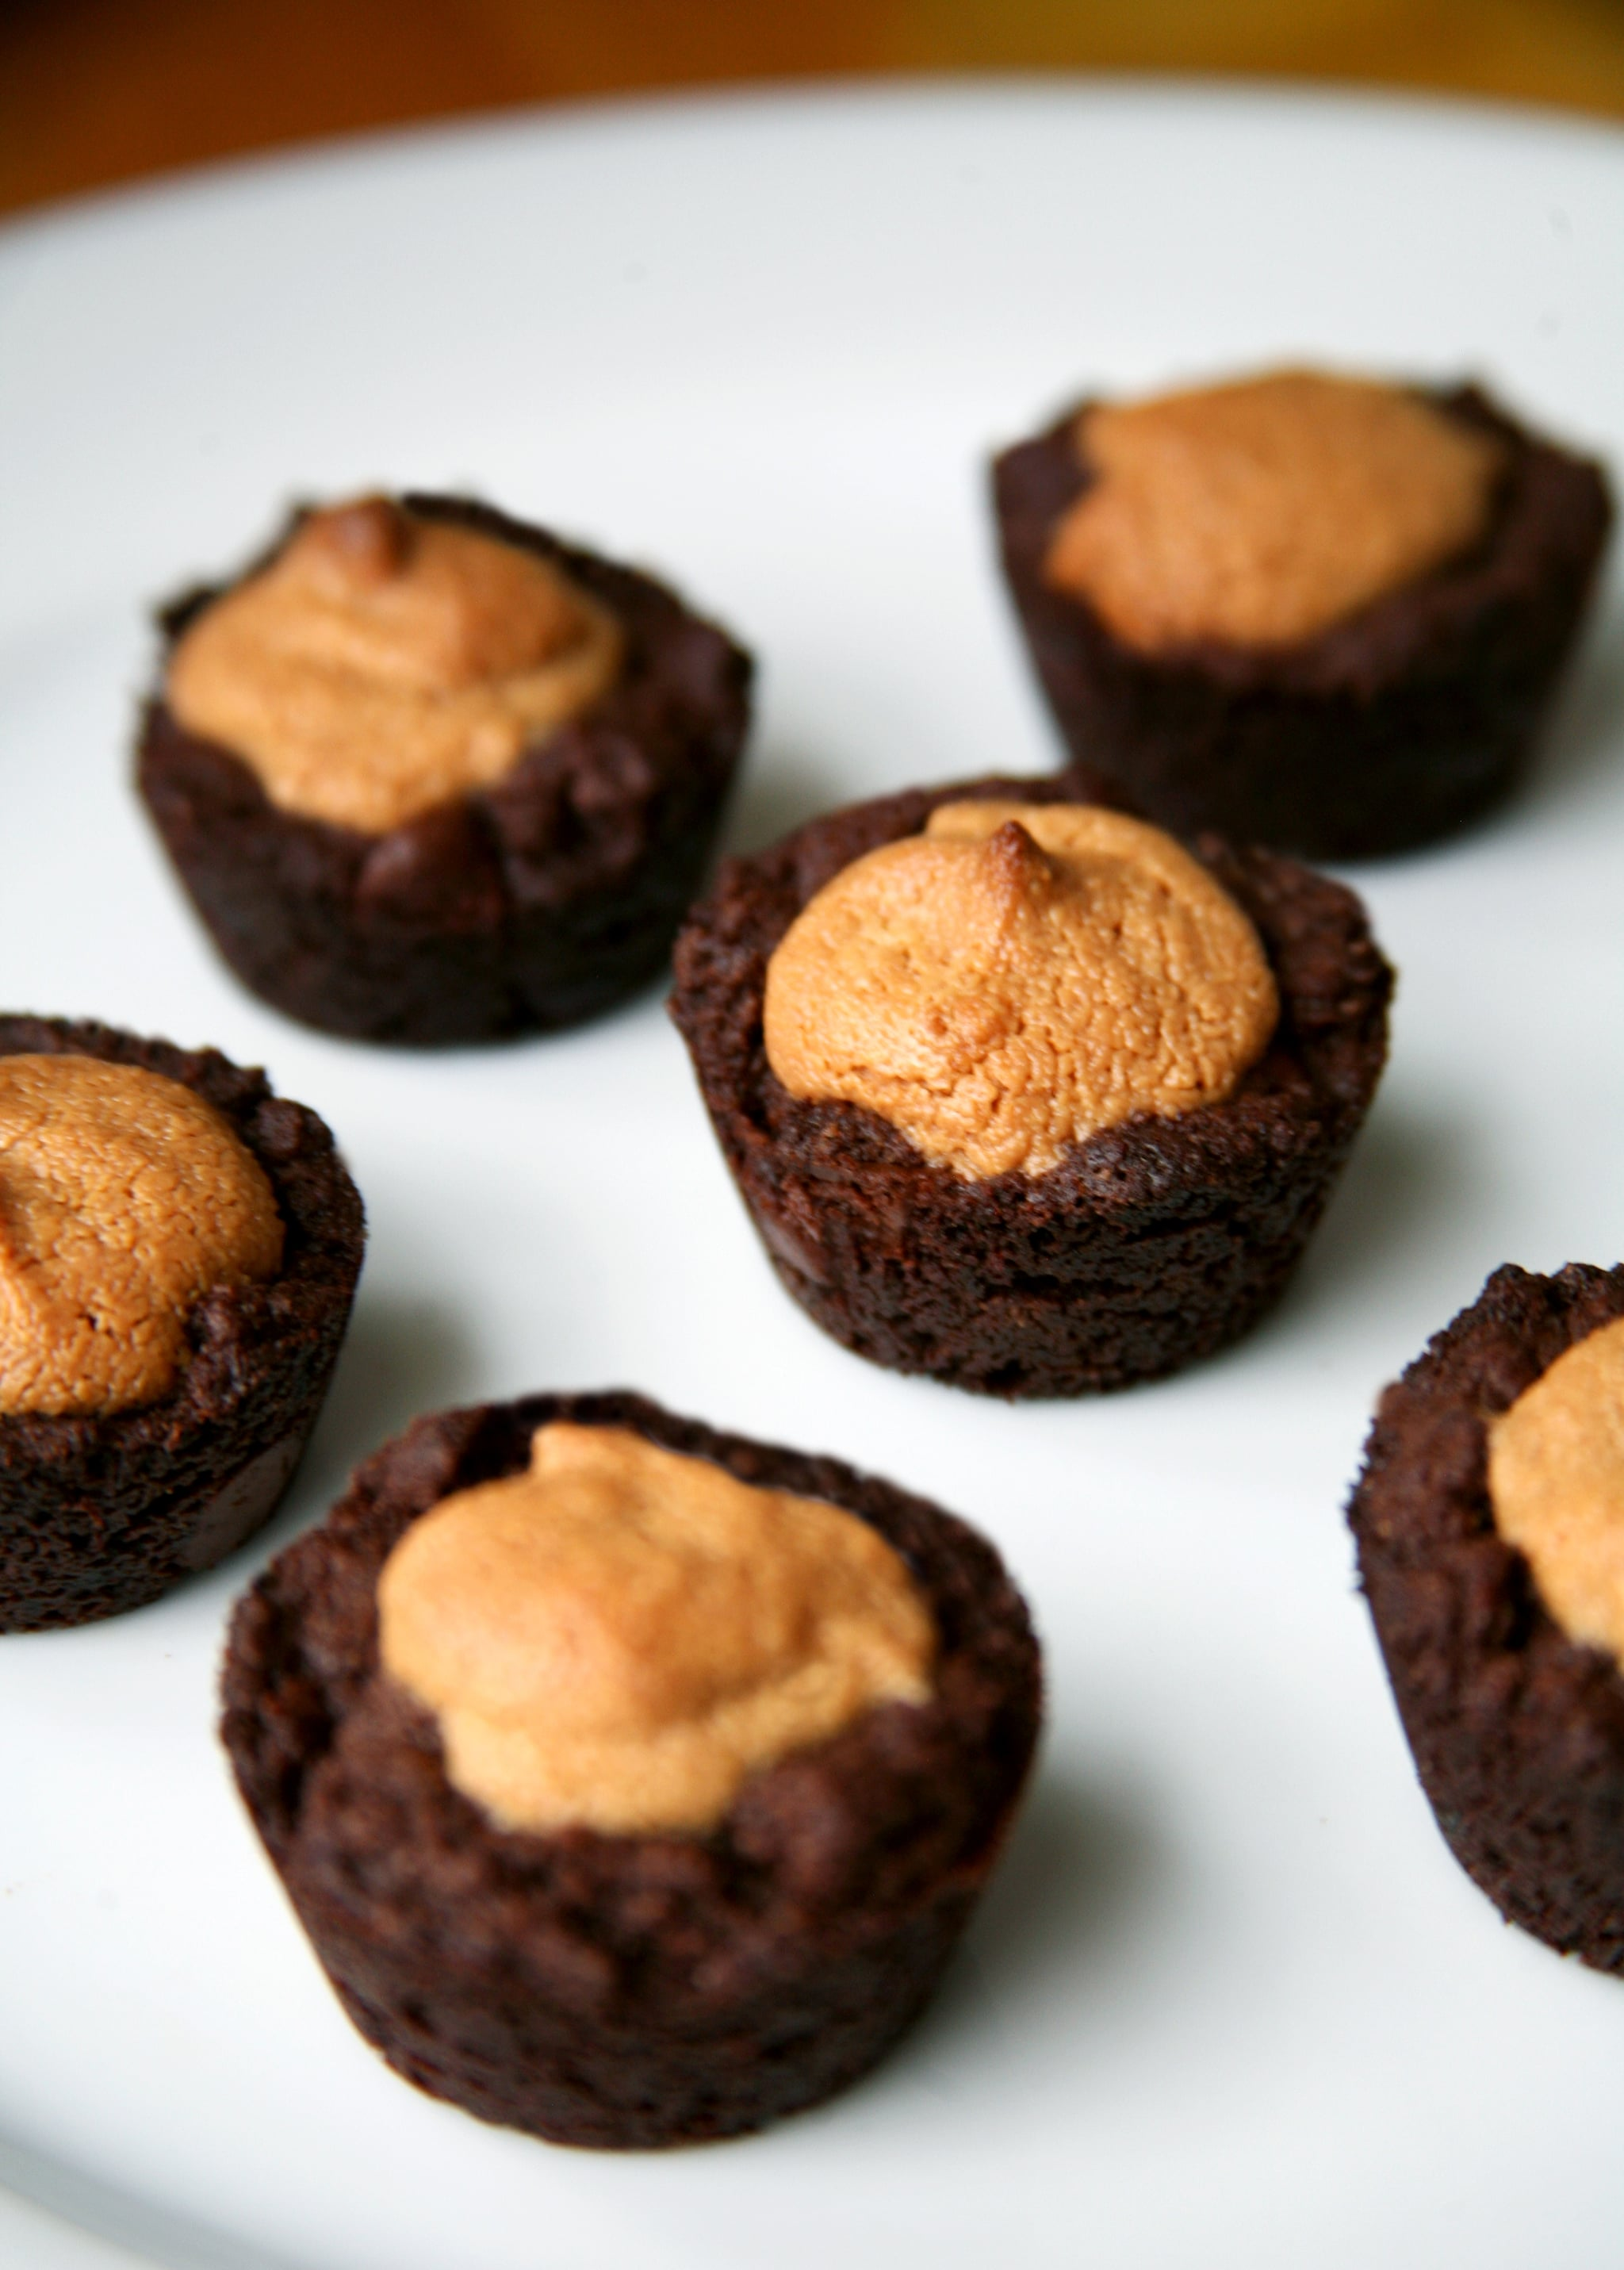 Vegan Bliss! Peanut Butter Brownie Bites With a Protein Kick